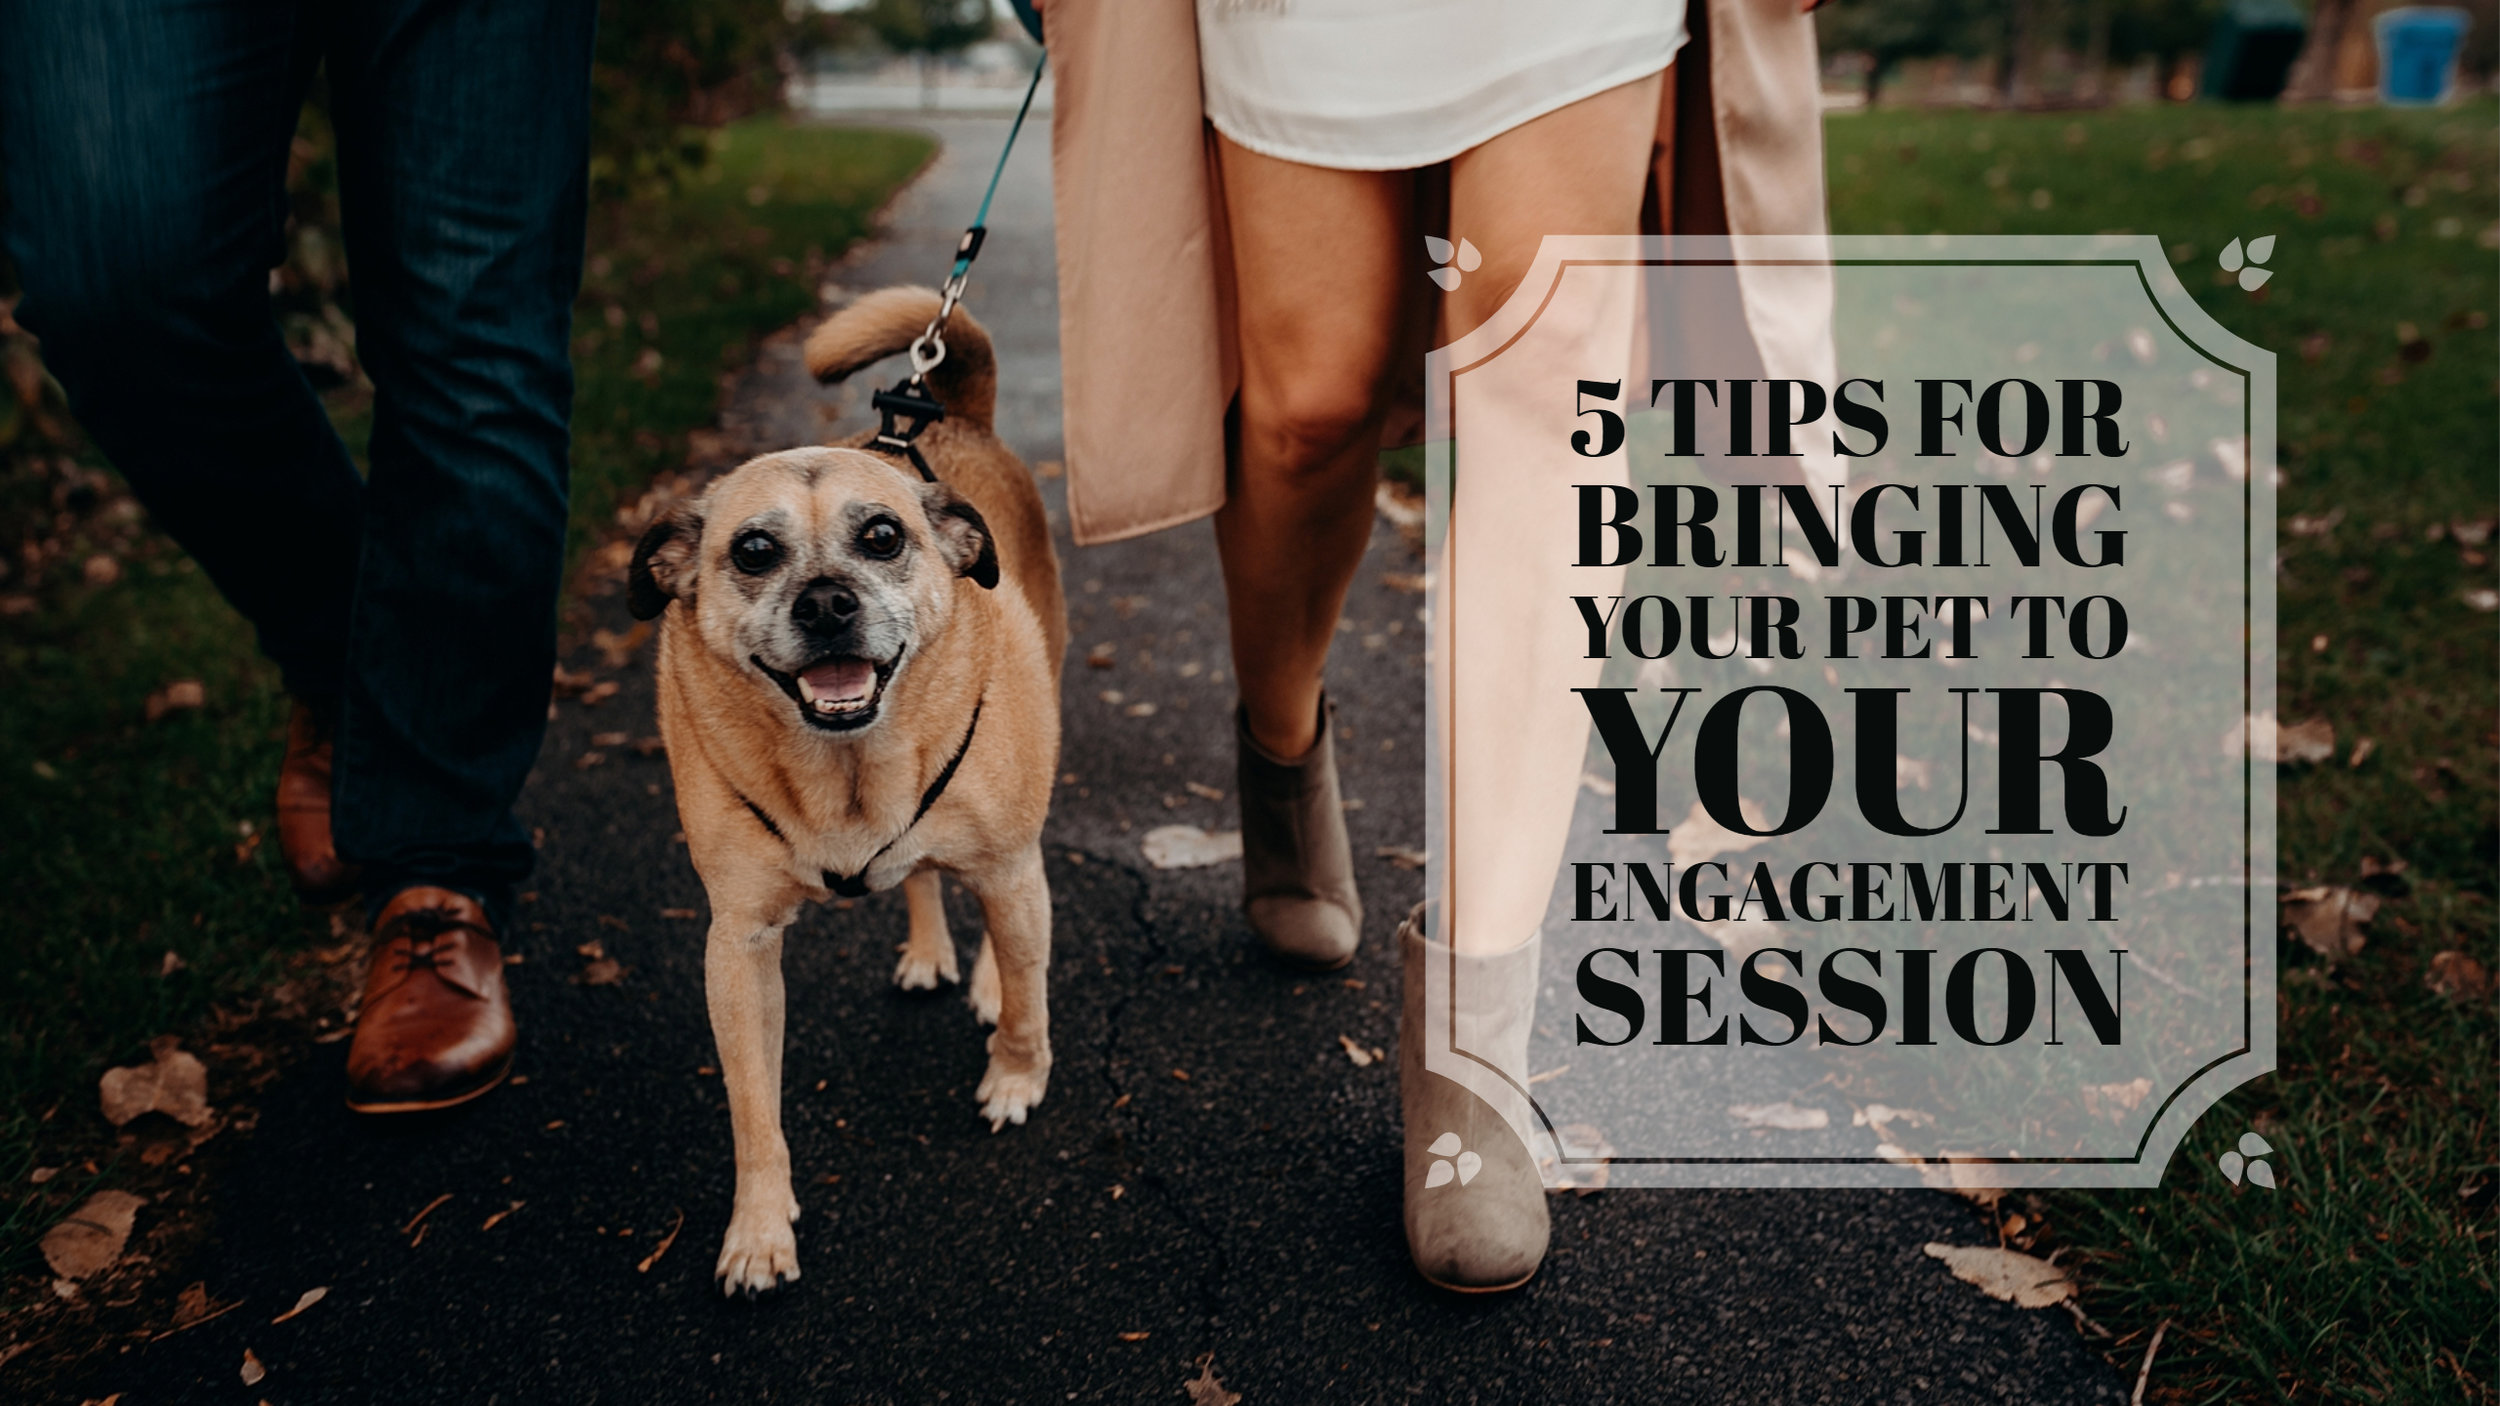 5 Tips for bringing your pet to your engagement session 15